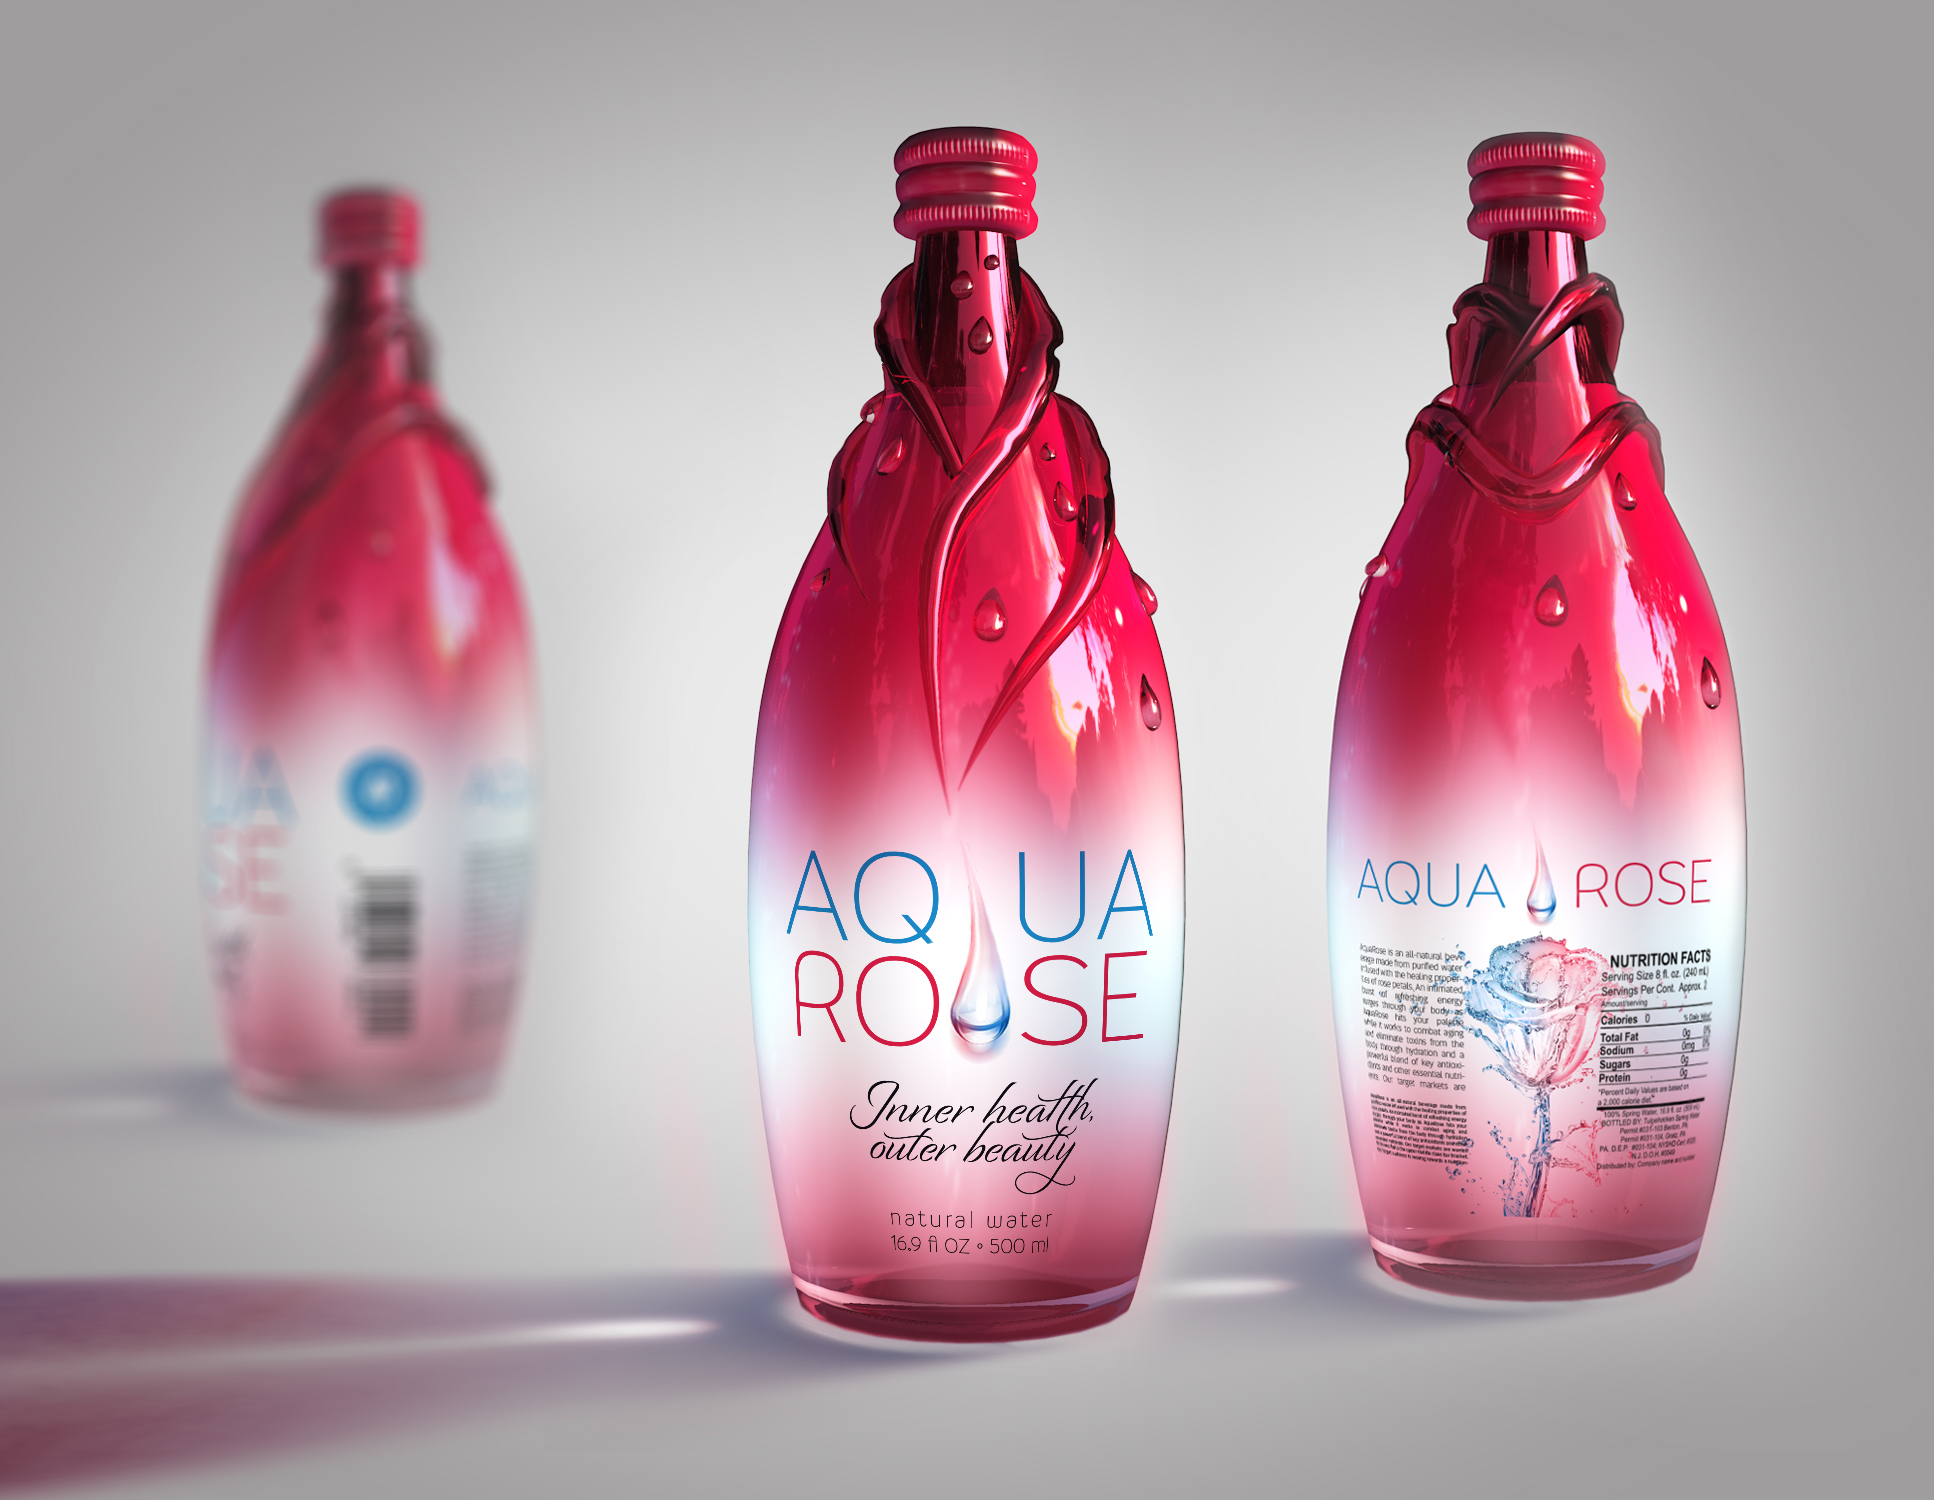 AquaRose product packaging